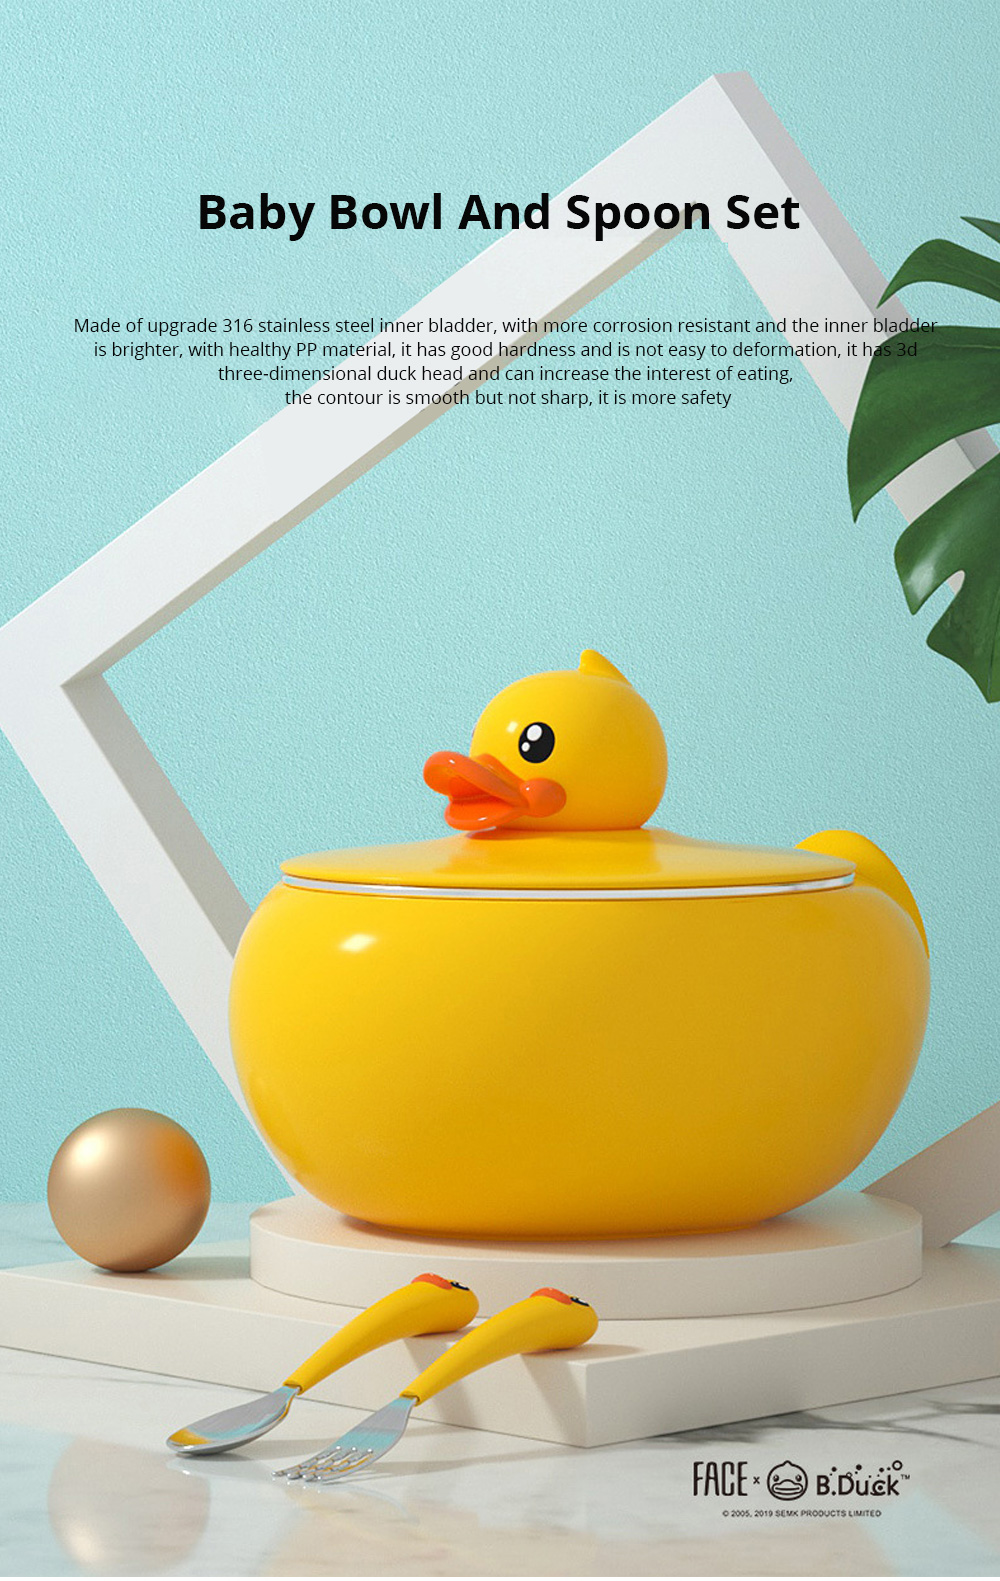 Small Yellow Duck Water Injection Bowl Children Tableware Baby Eating Bowl Stainless Steel Baby Spoon Set Complementary Food 0